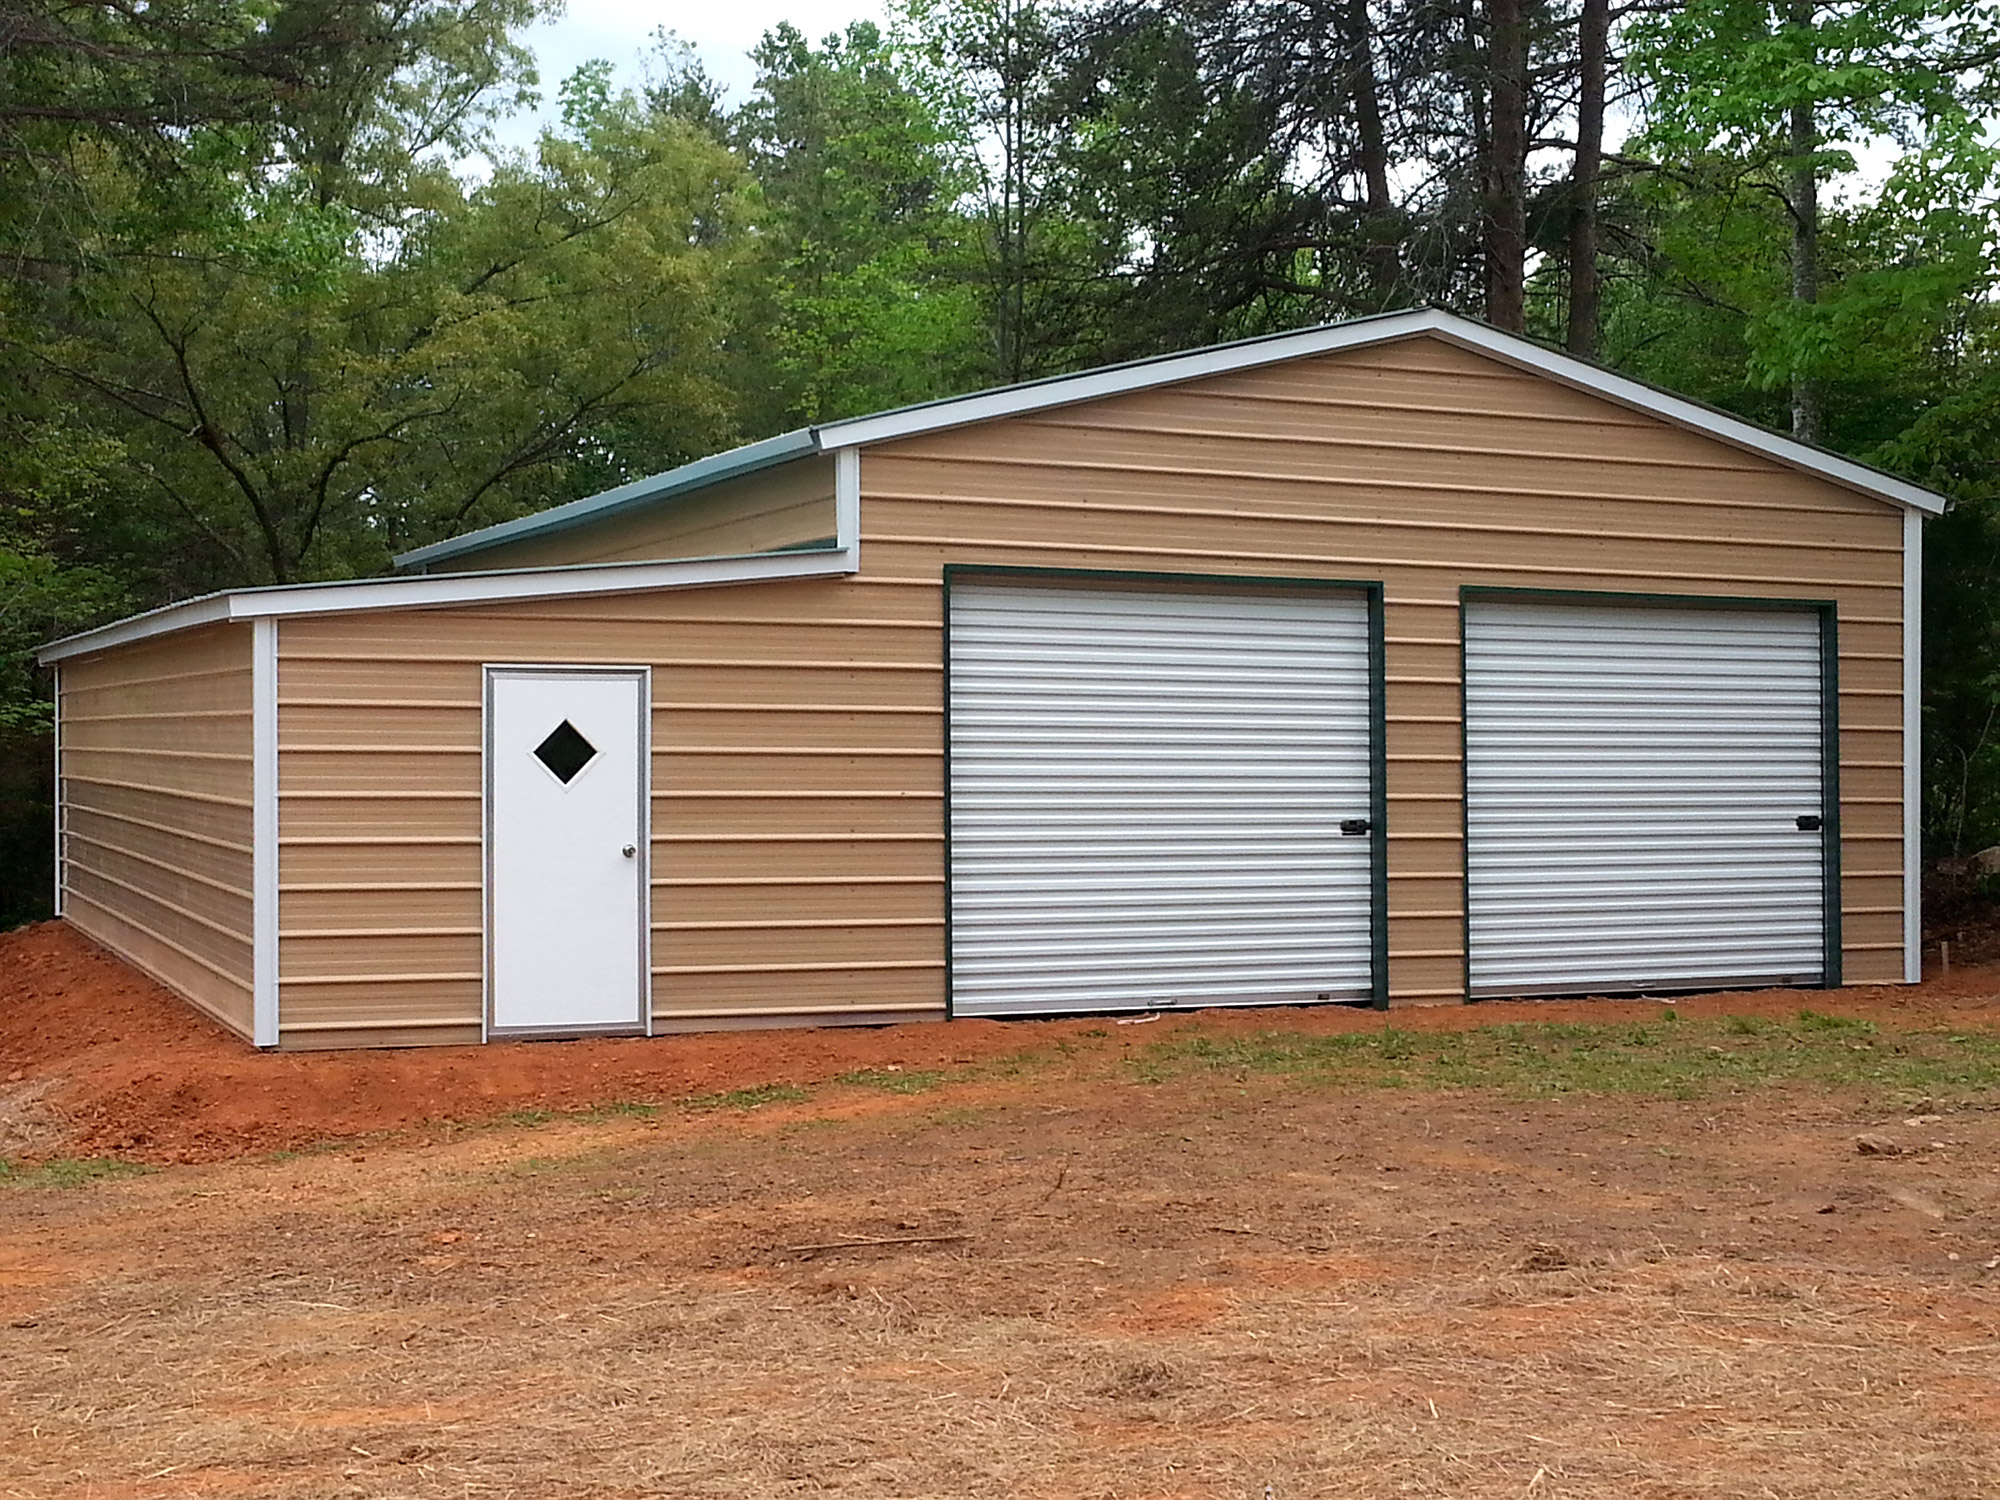 A carport provides covered parking for Rv covered parking structures